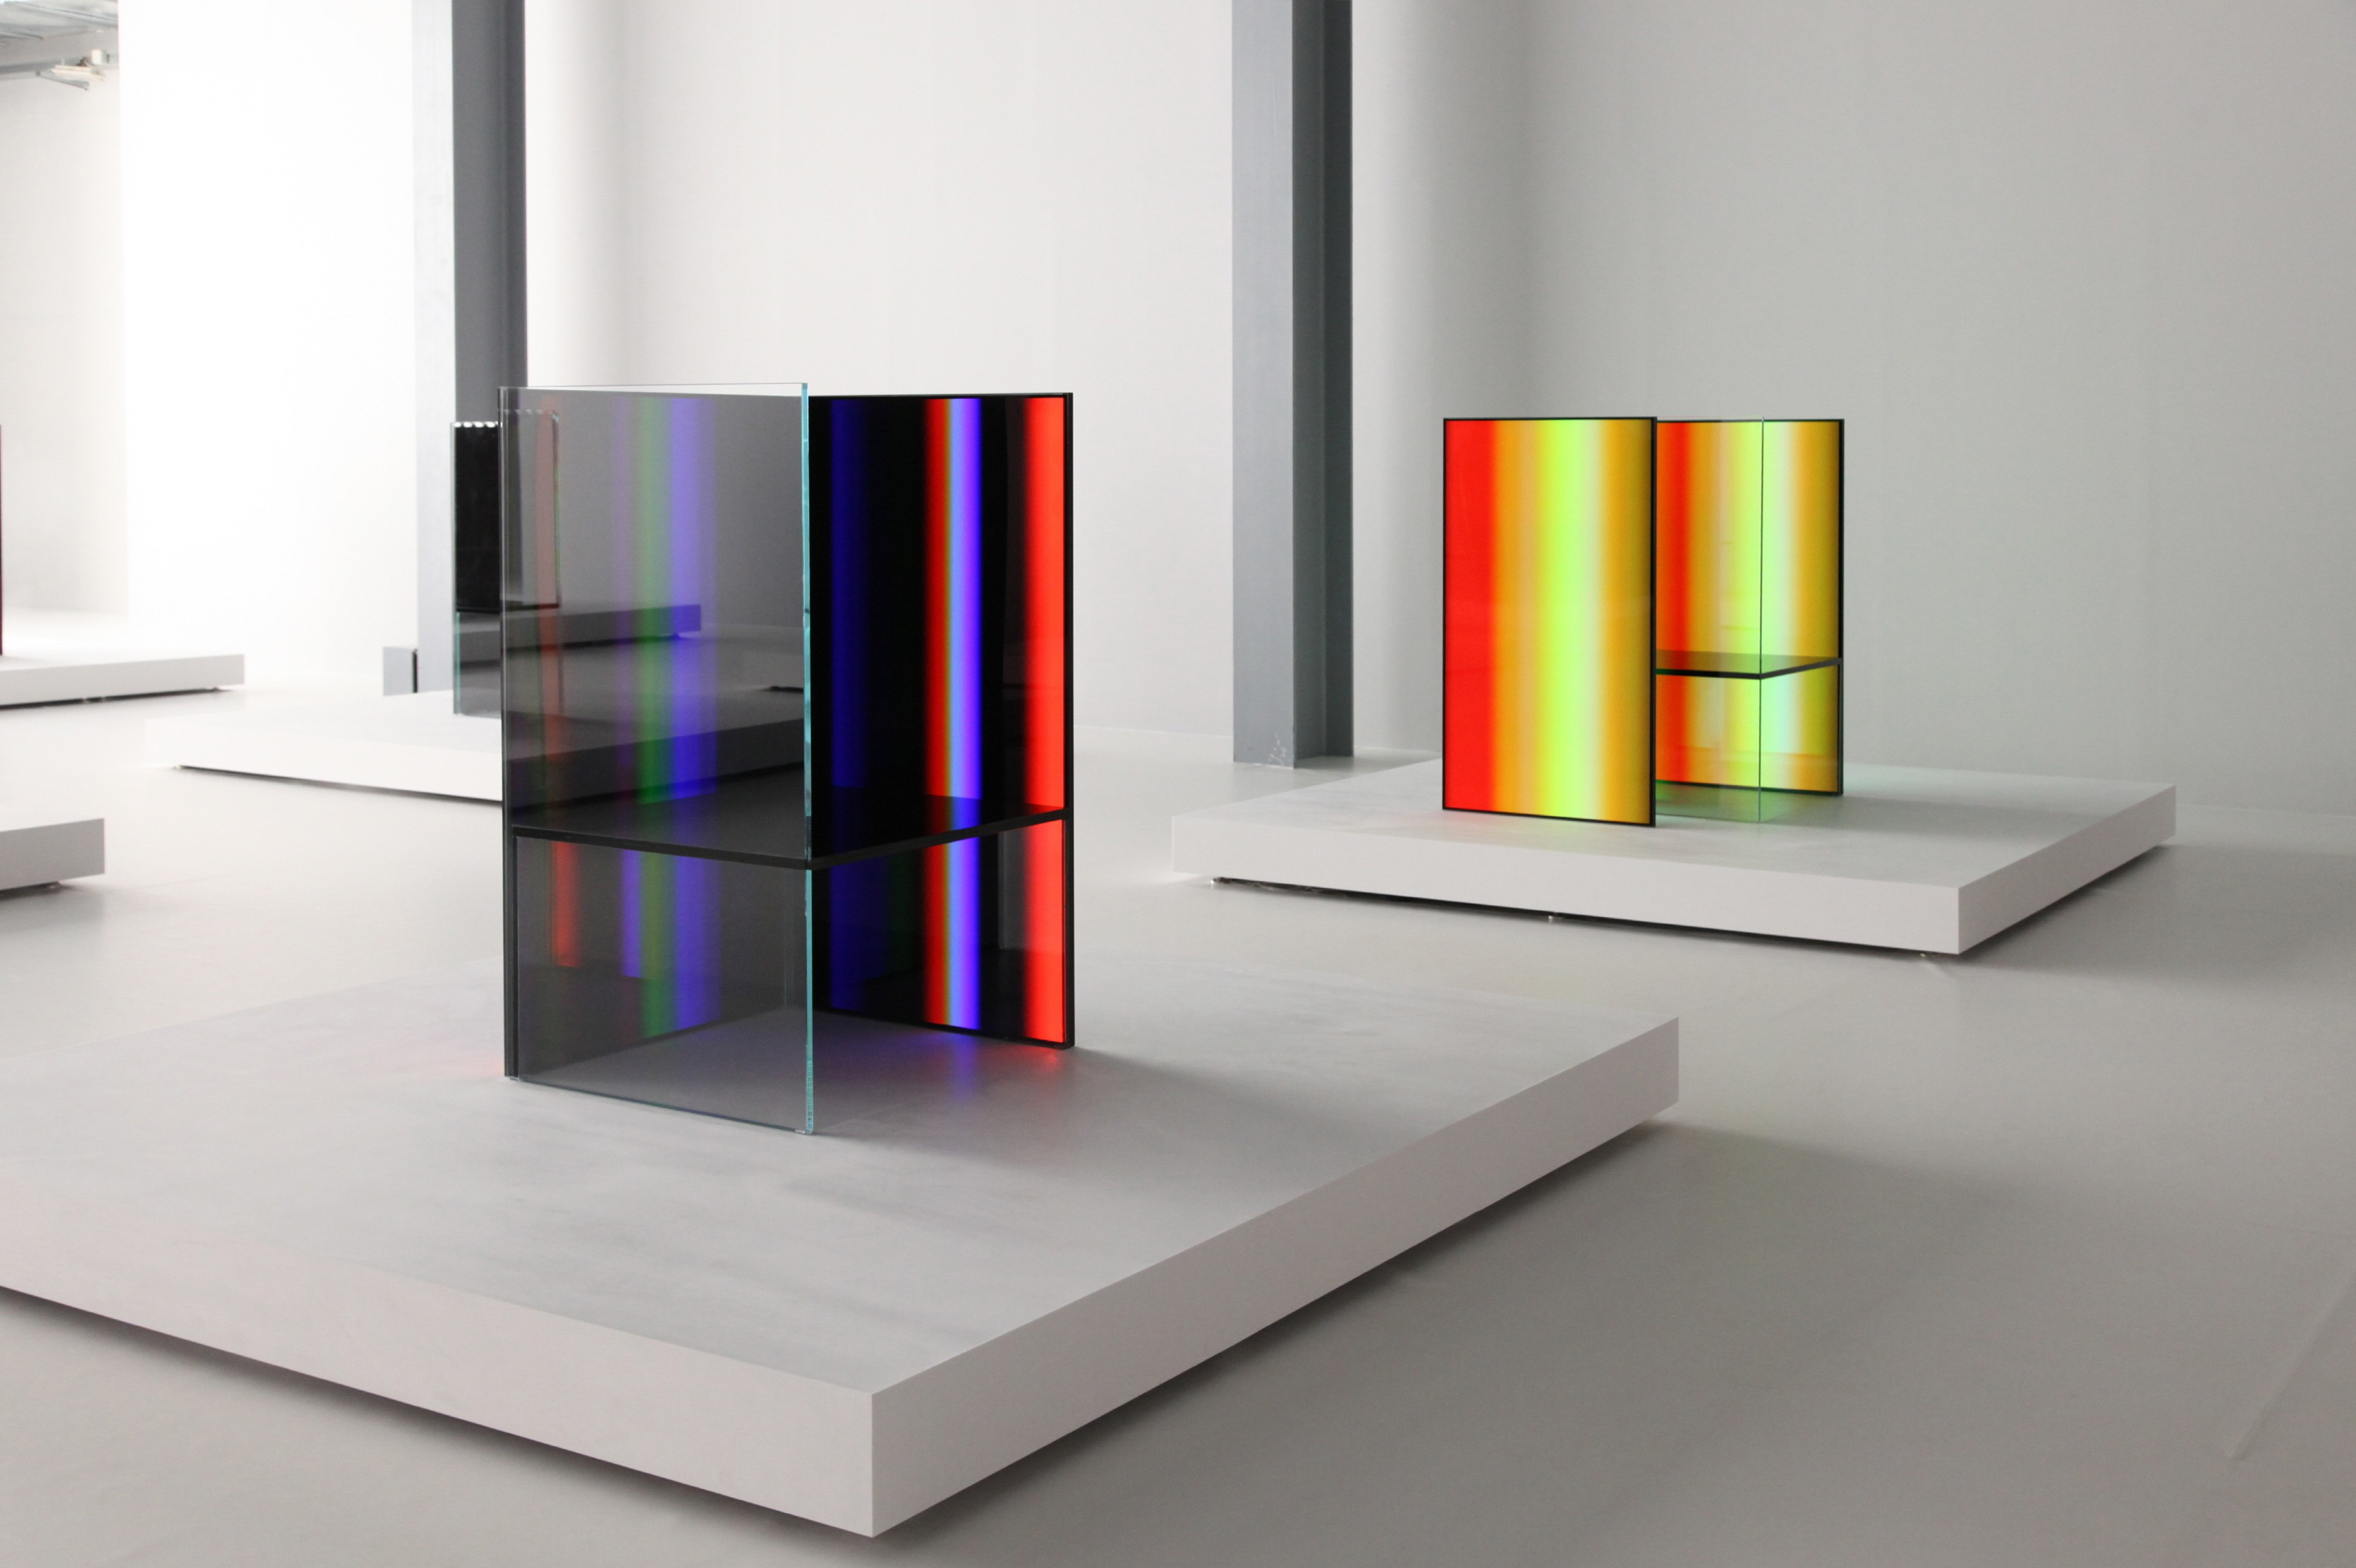 Side view of two of the art installations inside Tokujin Yoshioka's exhibition, equipped with LG's OLED displays to showcase vivid colors and artwork to visitors